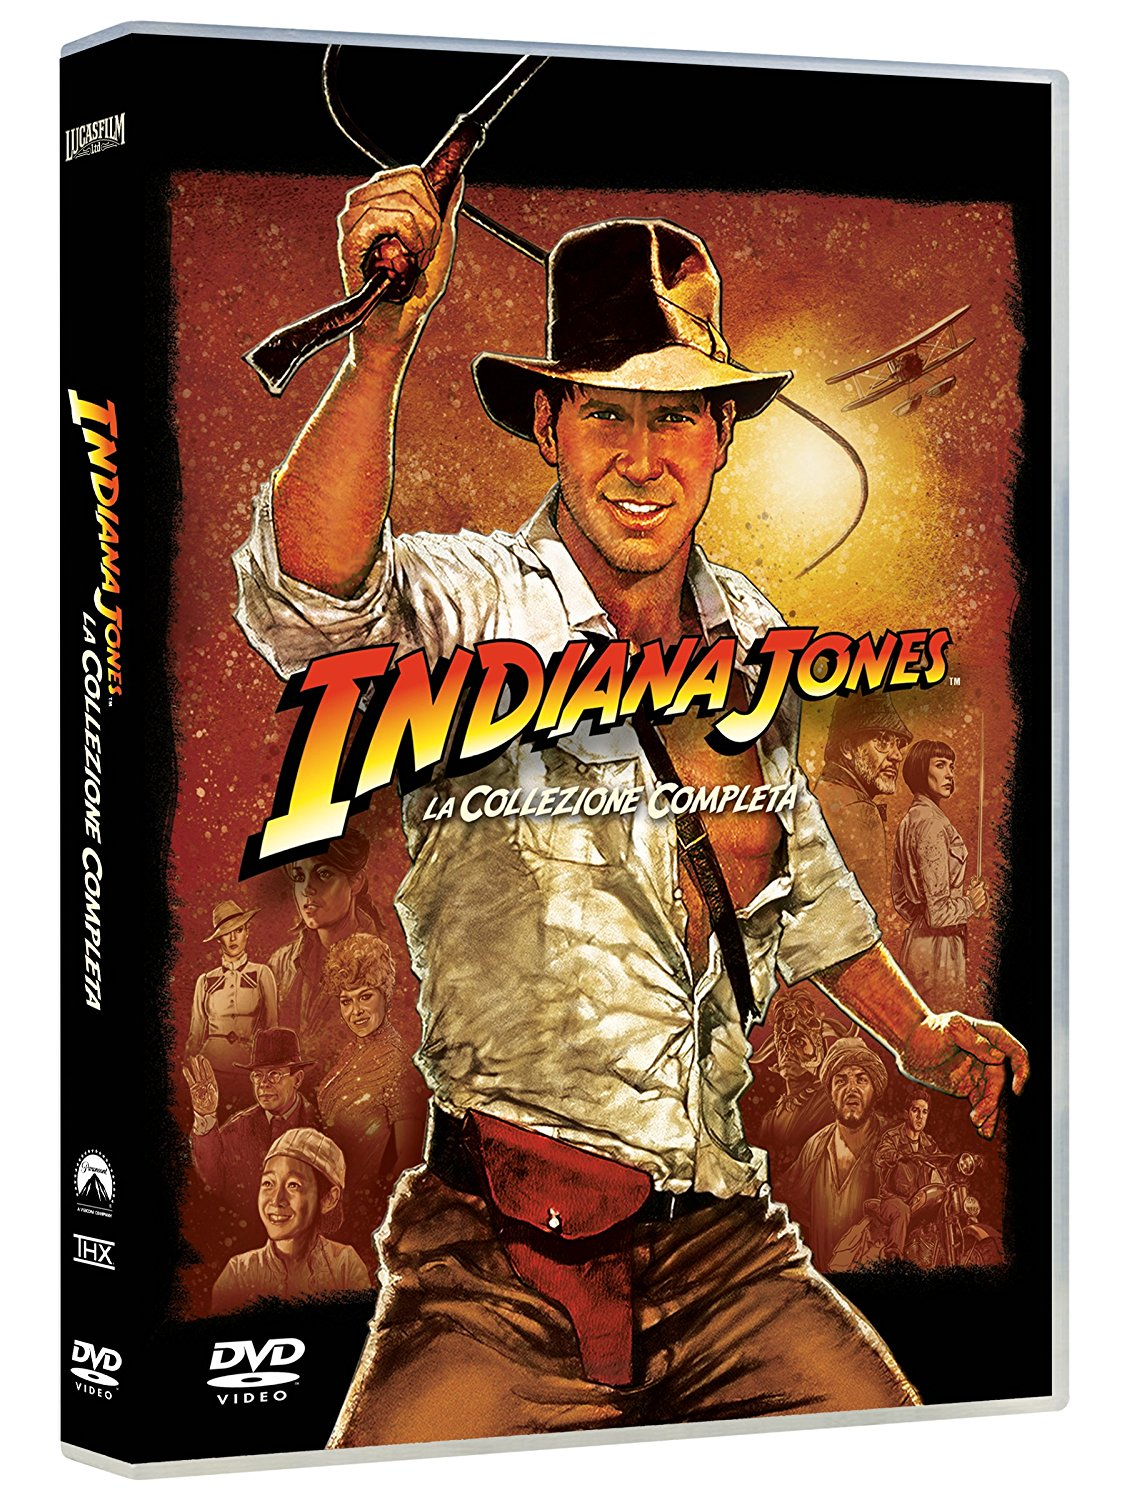 COF.INDIANA JONES QUADRILOGIA (4 DVD) (DVD)